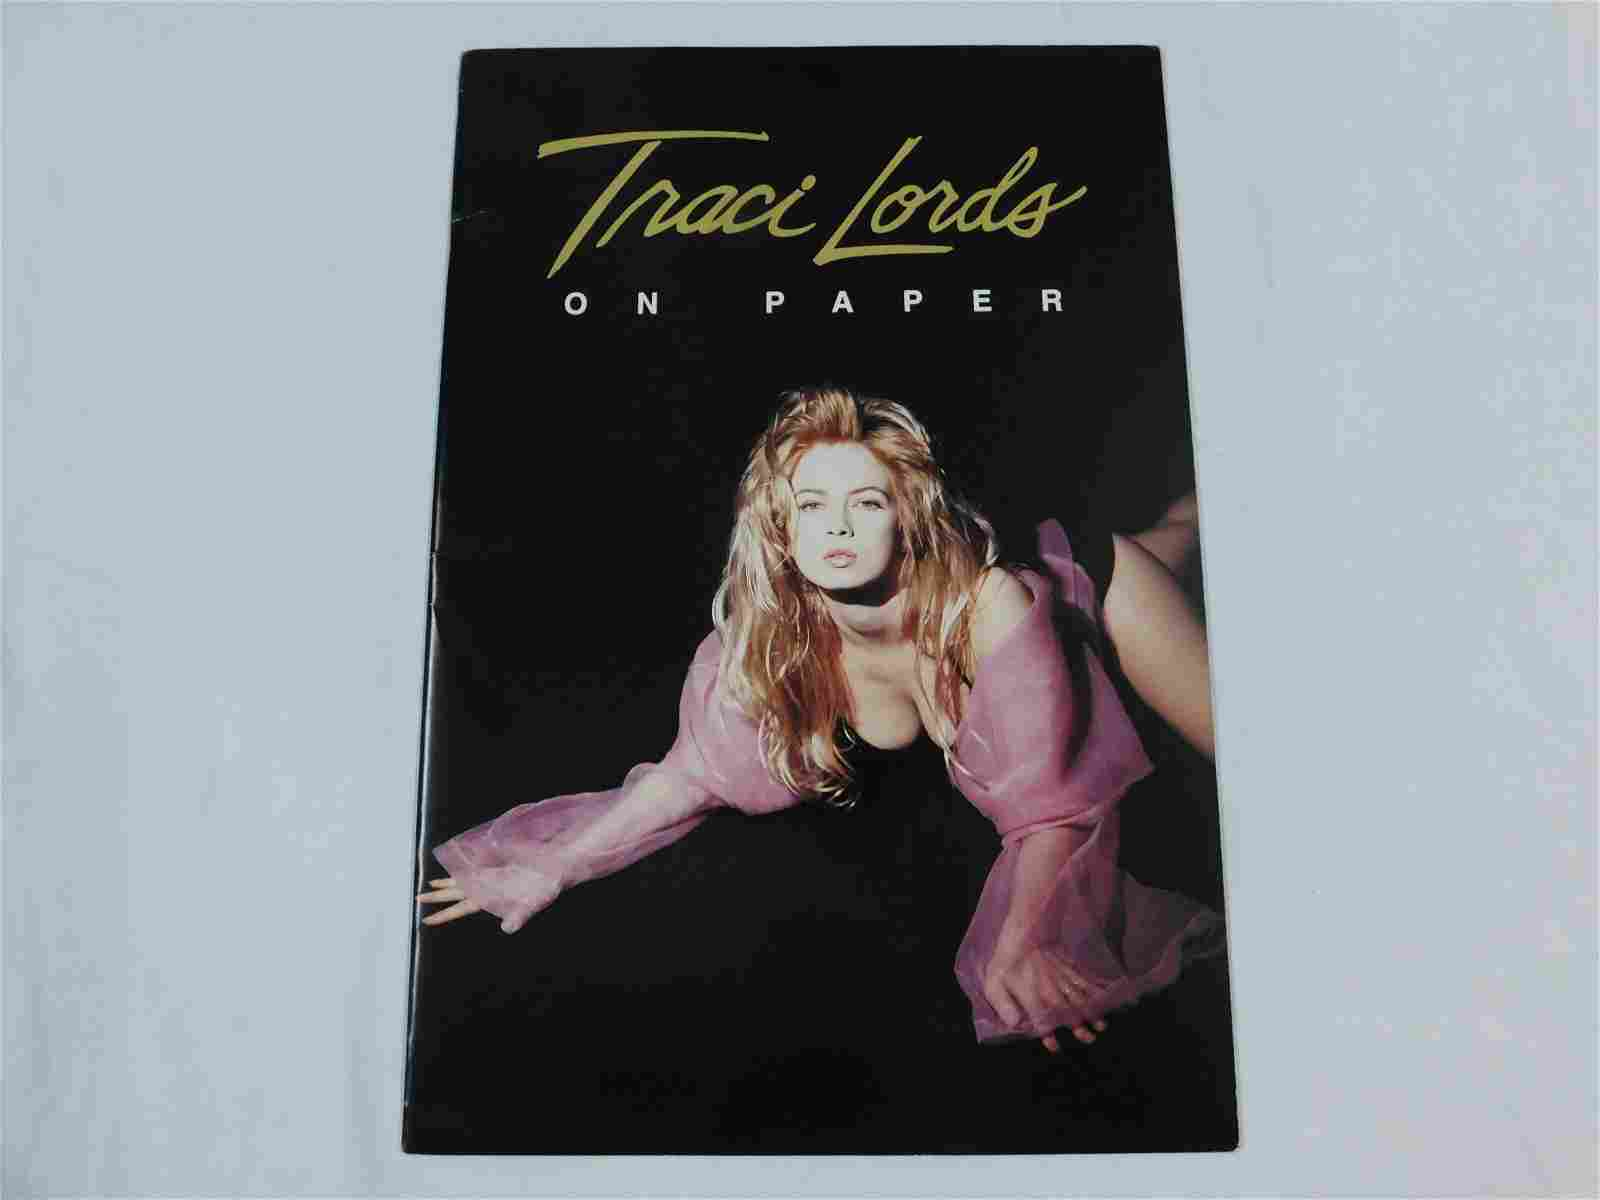 Traci Lords on Paper